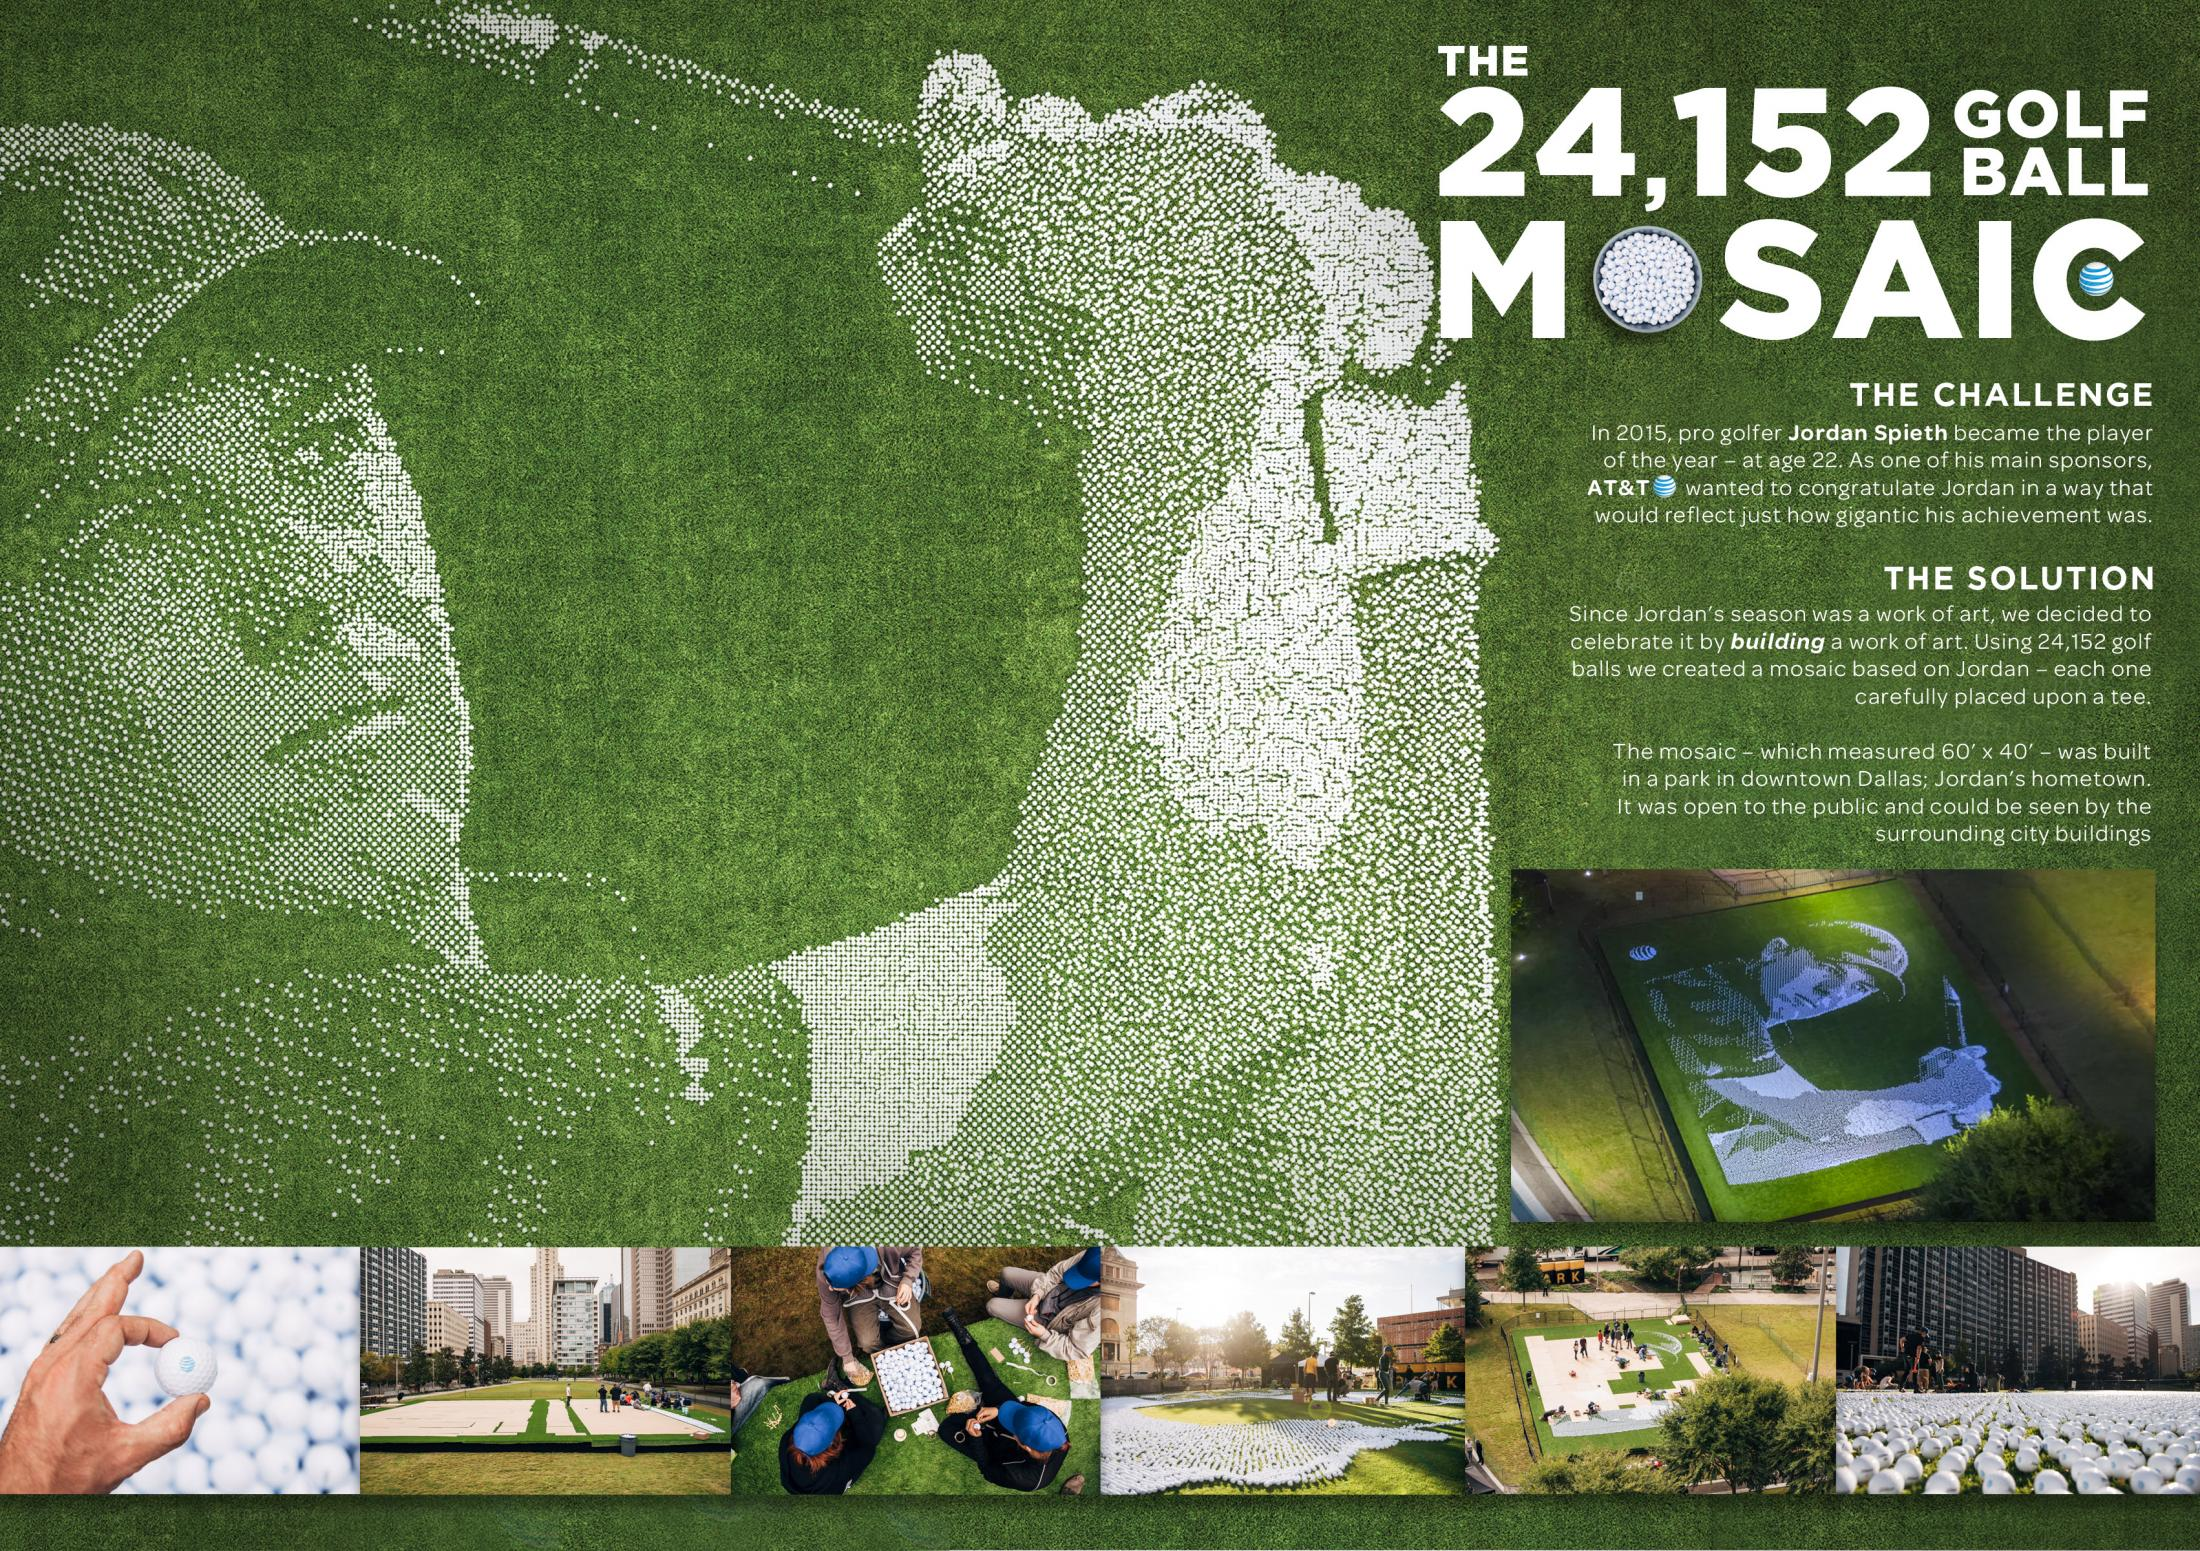 Thumbnail for The 24,152 Golf Ball Mosaic